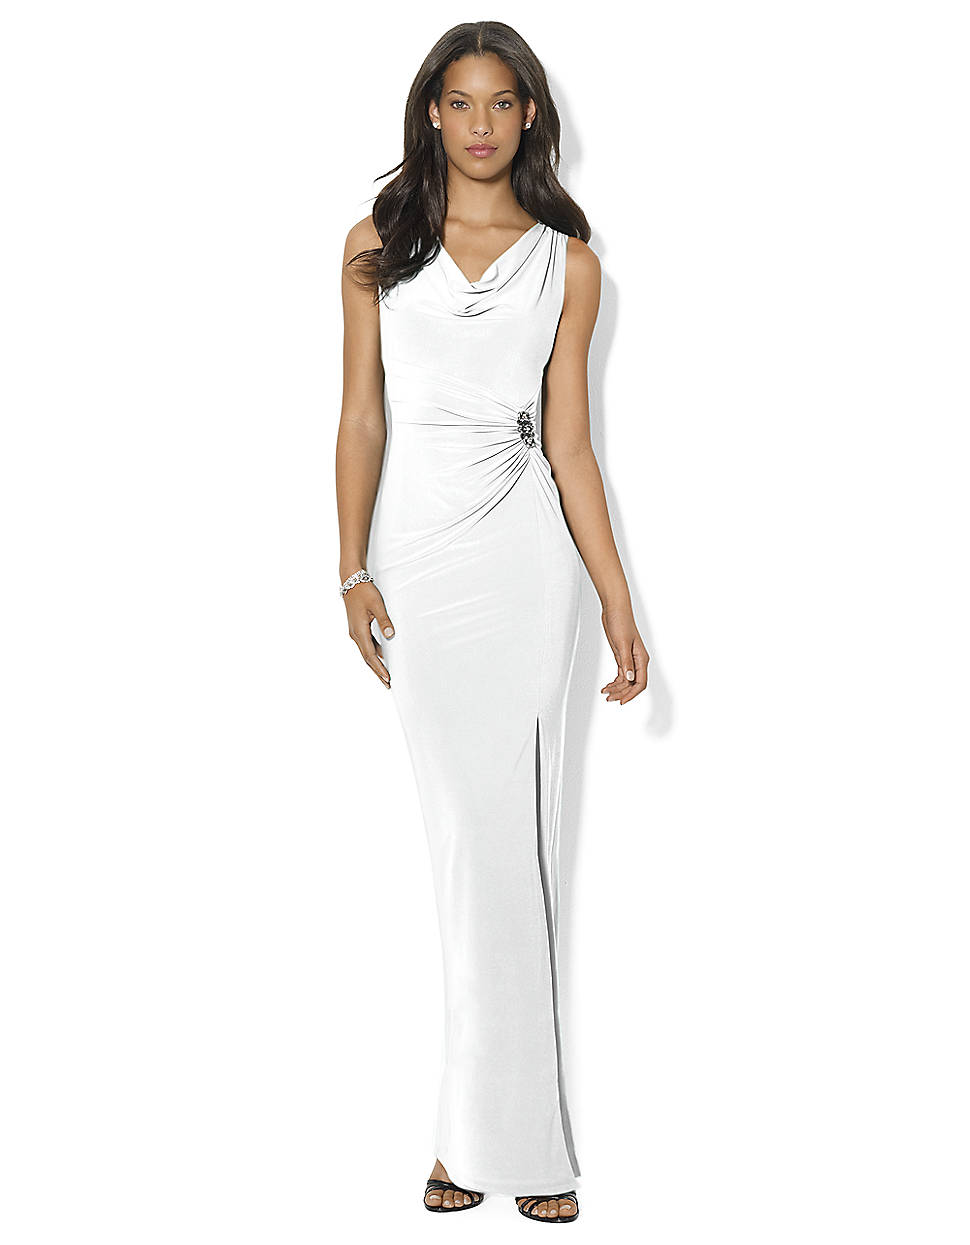 Ralph Lauren Evening Gowns Lord And Taylor - Eligent Prom Dresses